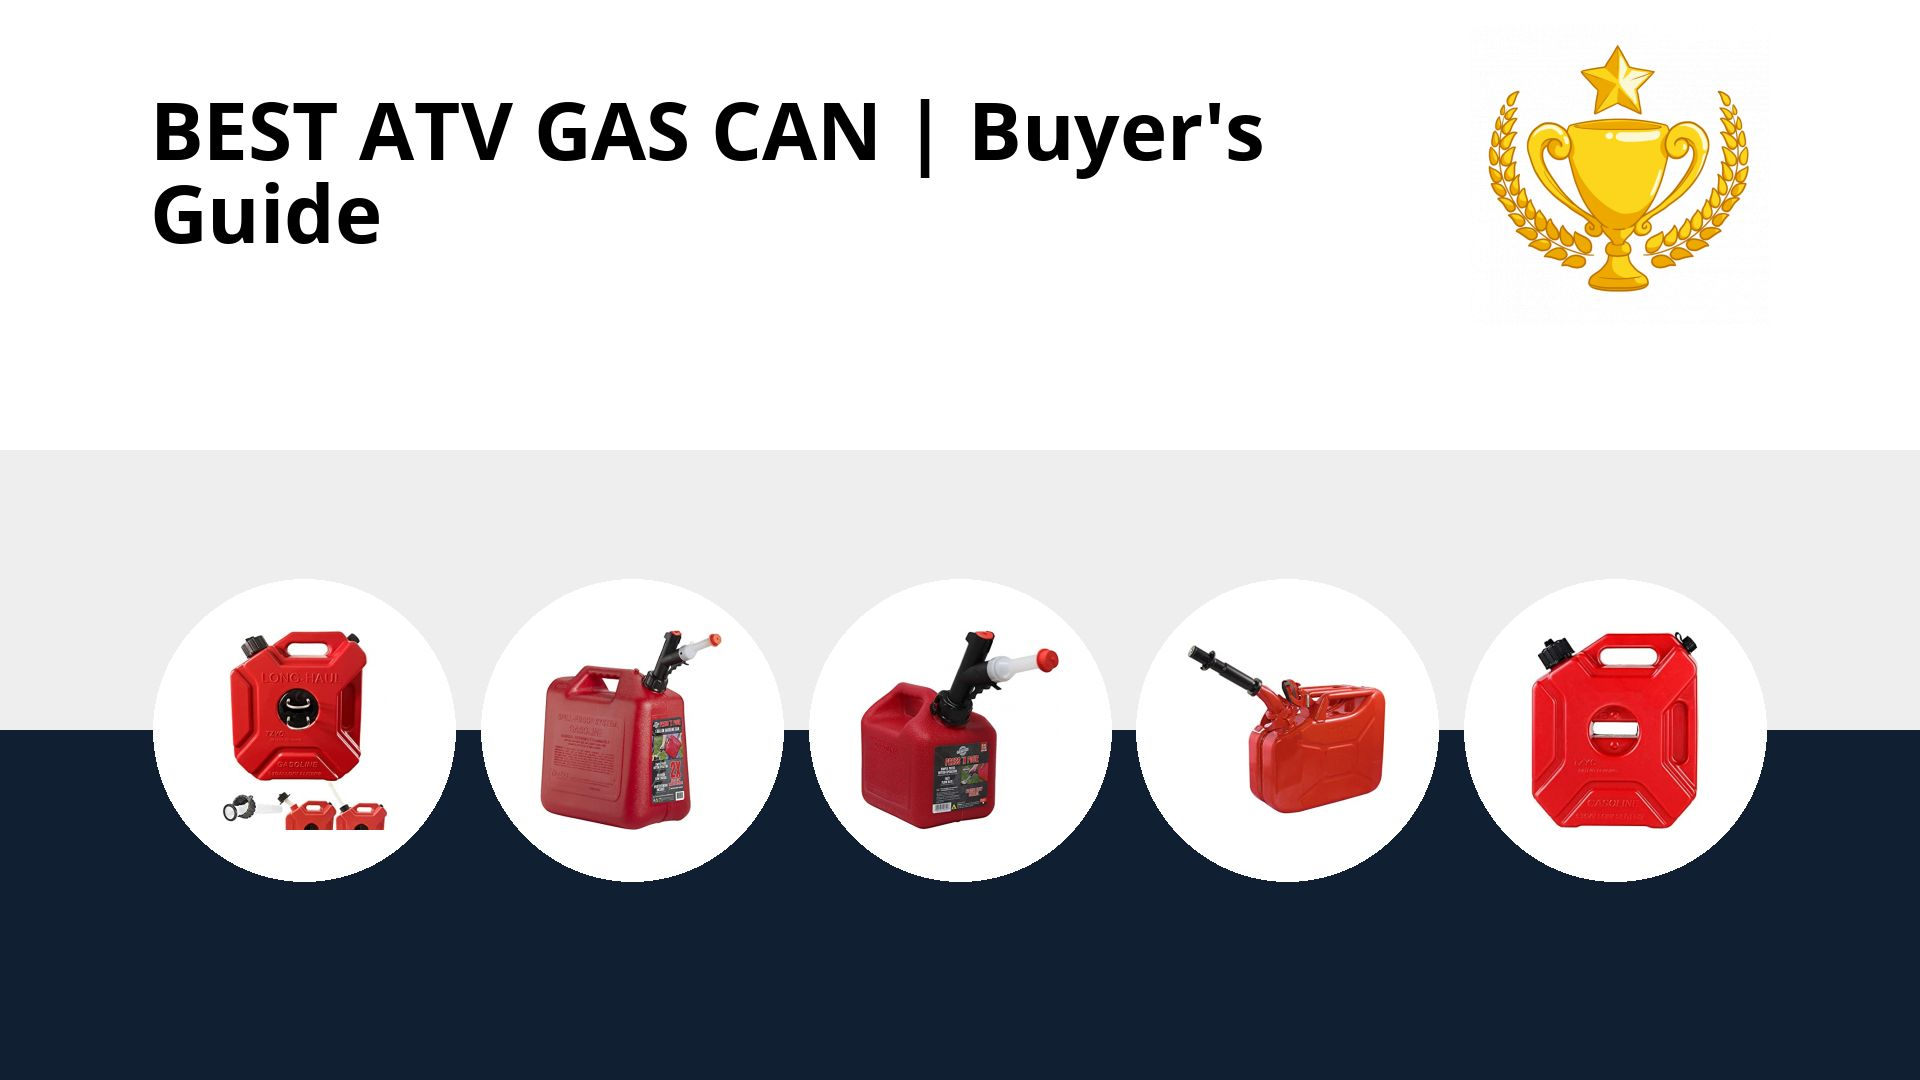 Best Atv Gas Can: image